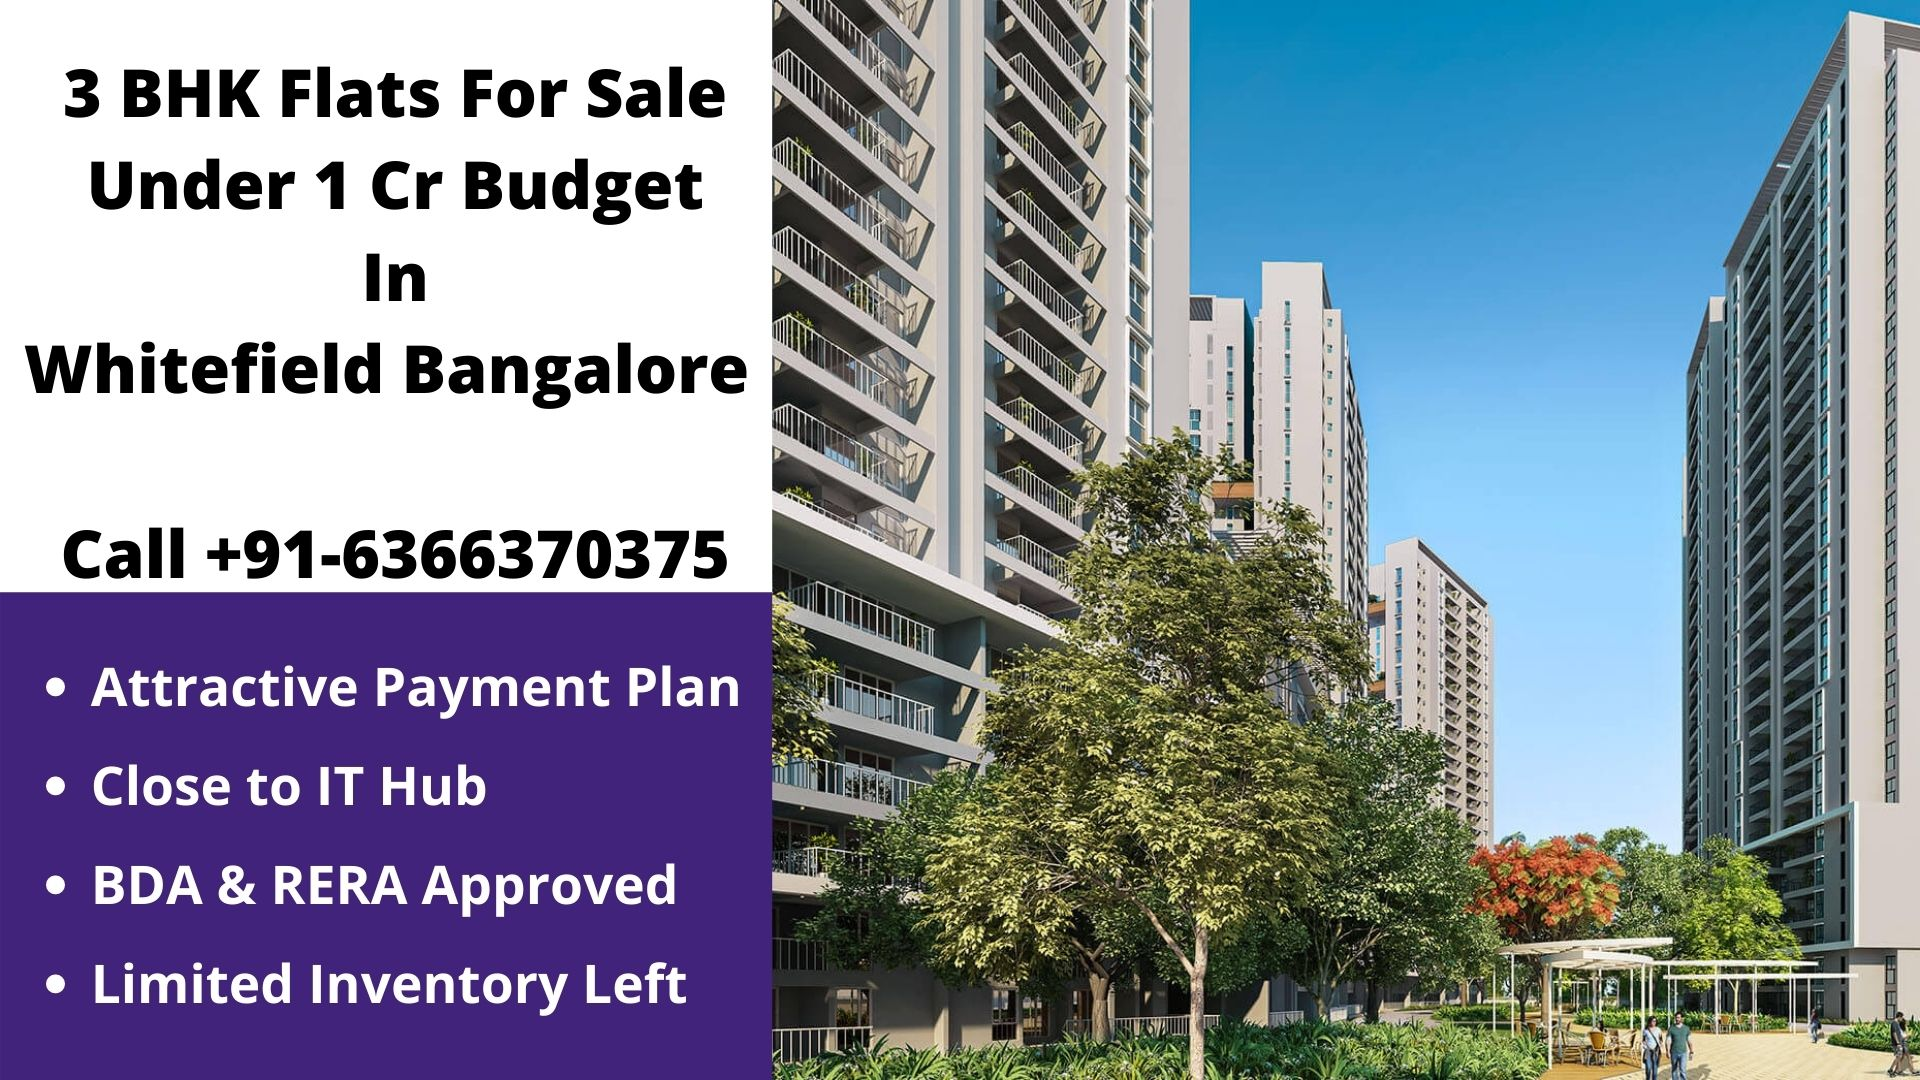 3 bhk flats under 1 cr in whitefield bangalore